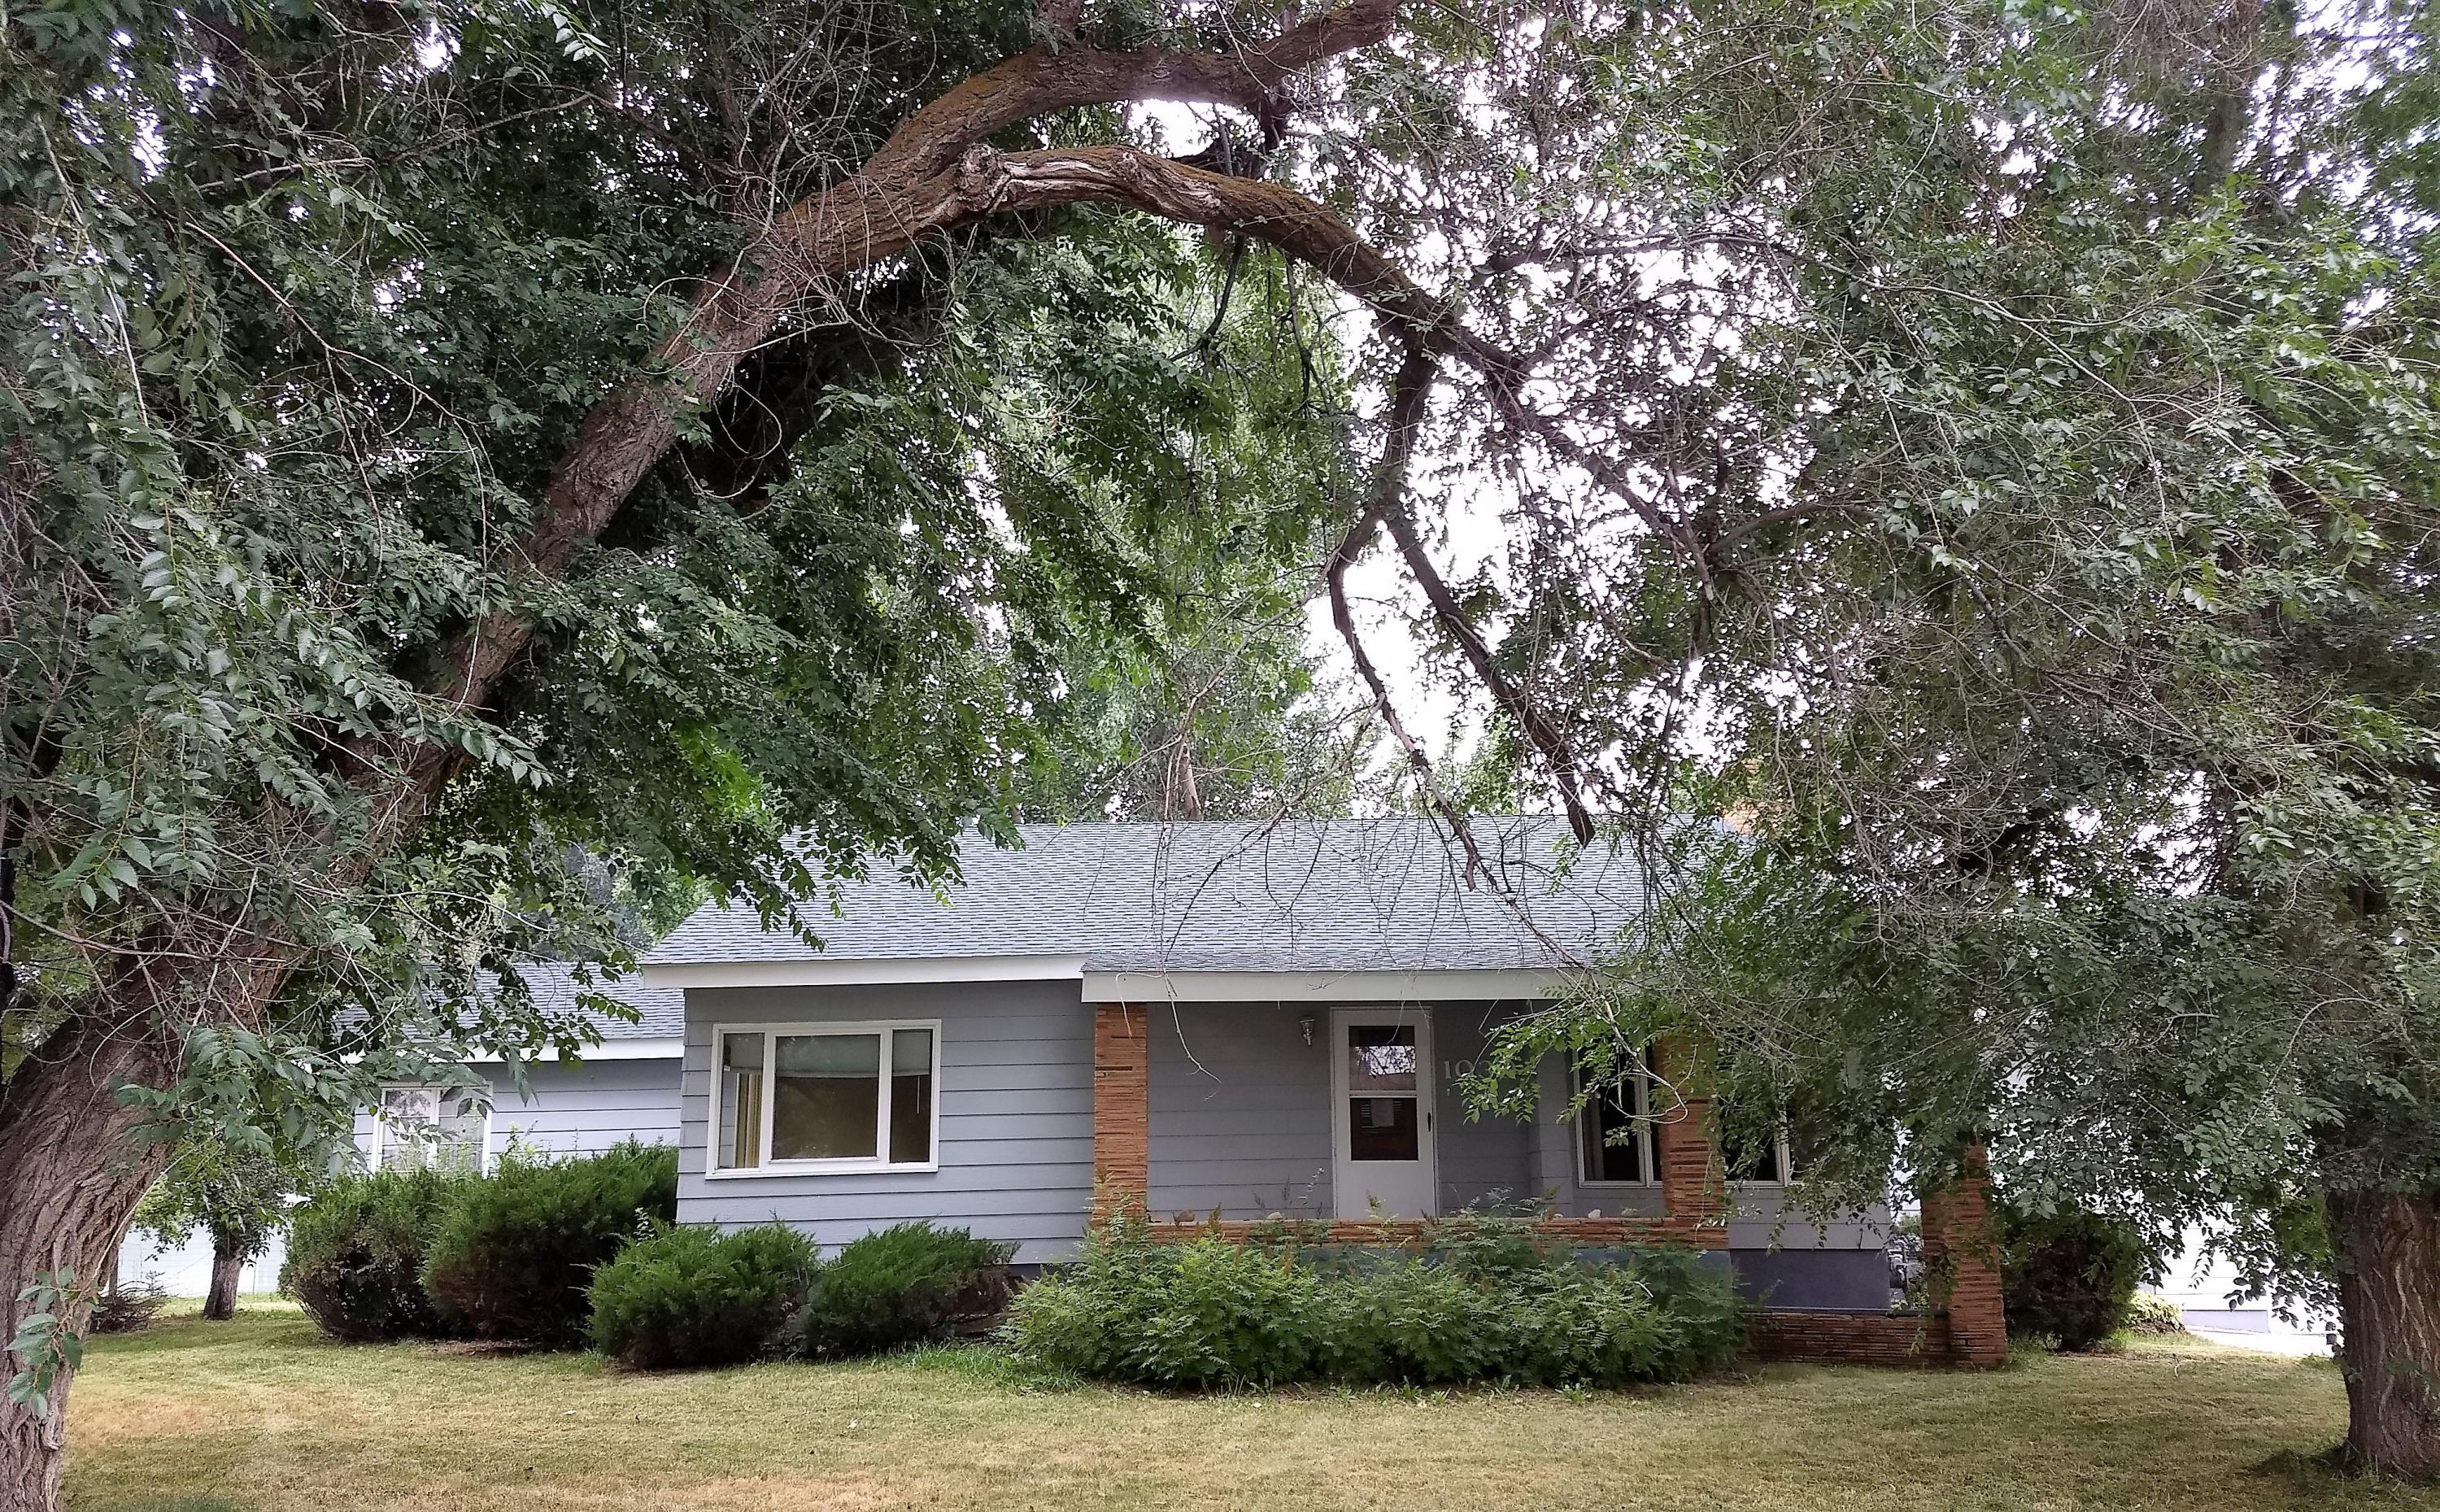 1030 5th Avenue East, Sheridan, Wyoming 82801, 4 Bedrooms Bedrooms, ,1.5 BathroomsBathrooms,Residential,For Sale,5th Avenue East,19-53